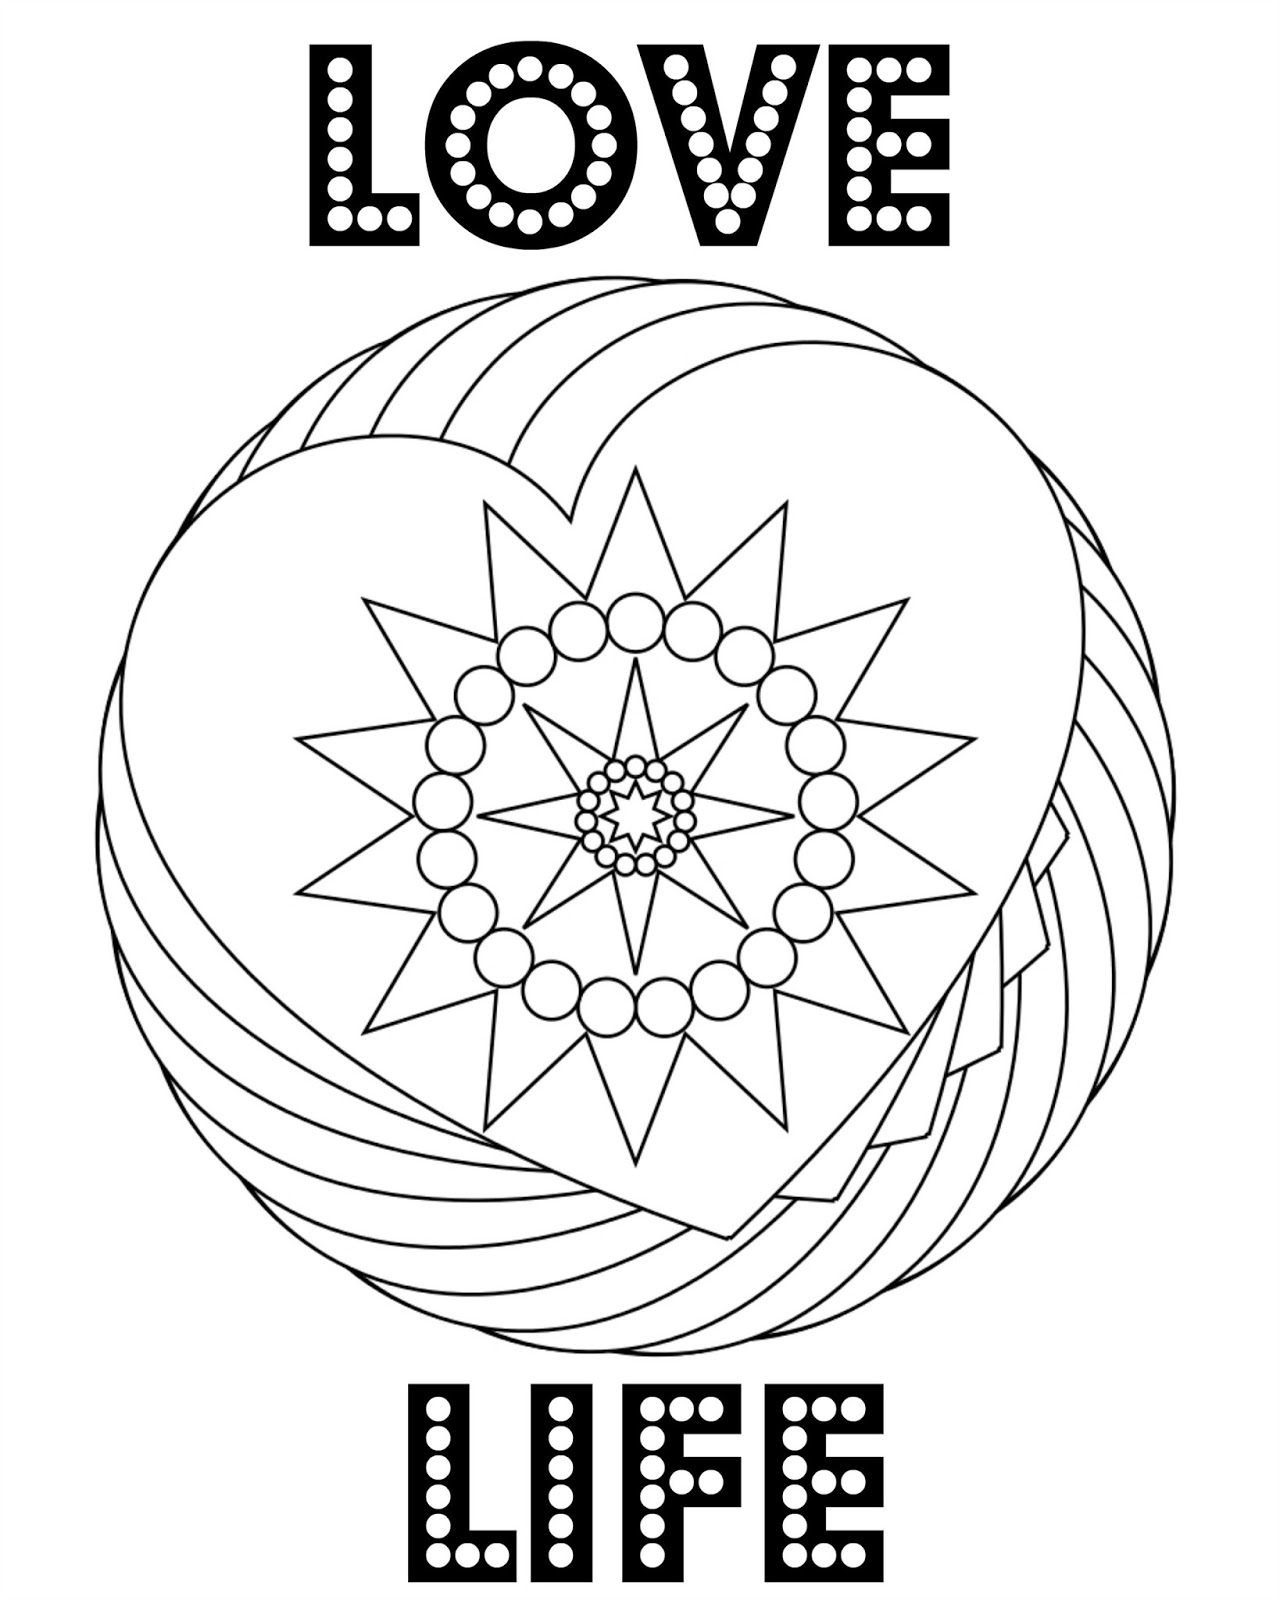 coloring pages inspirational inspirational coloring pages coloring home inspirational pages coloring 1 1